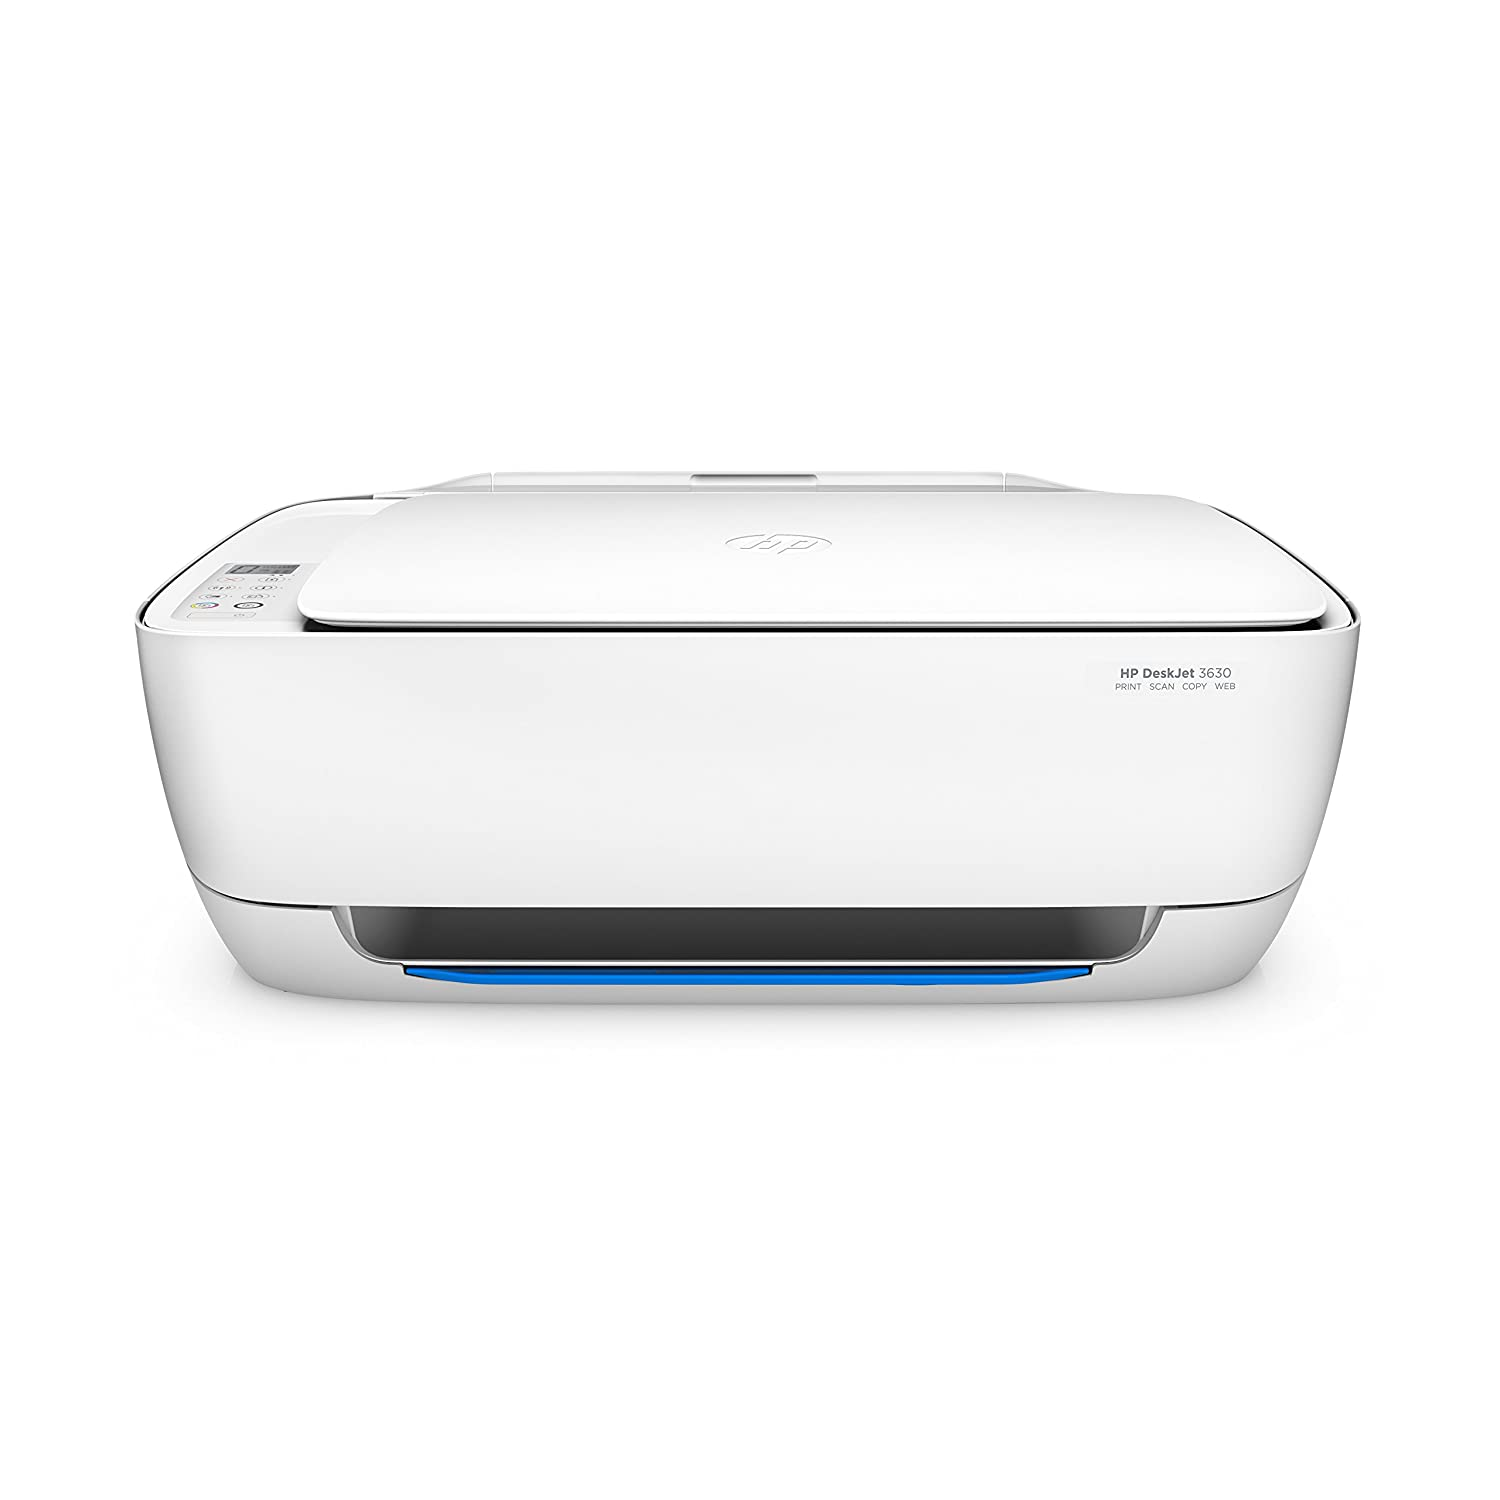 926caf049855 Amazon.com: HP DeskJet 3630 Color Inkjet All-in-One Printer (F5S57A#B1H):  Office Products